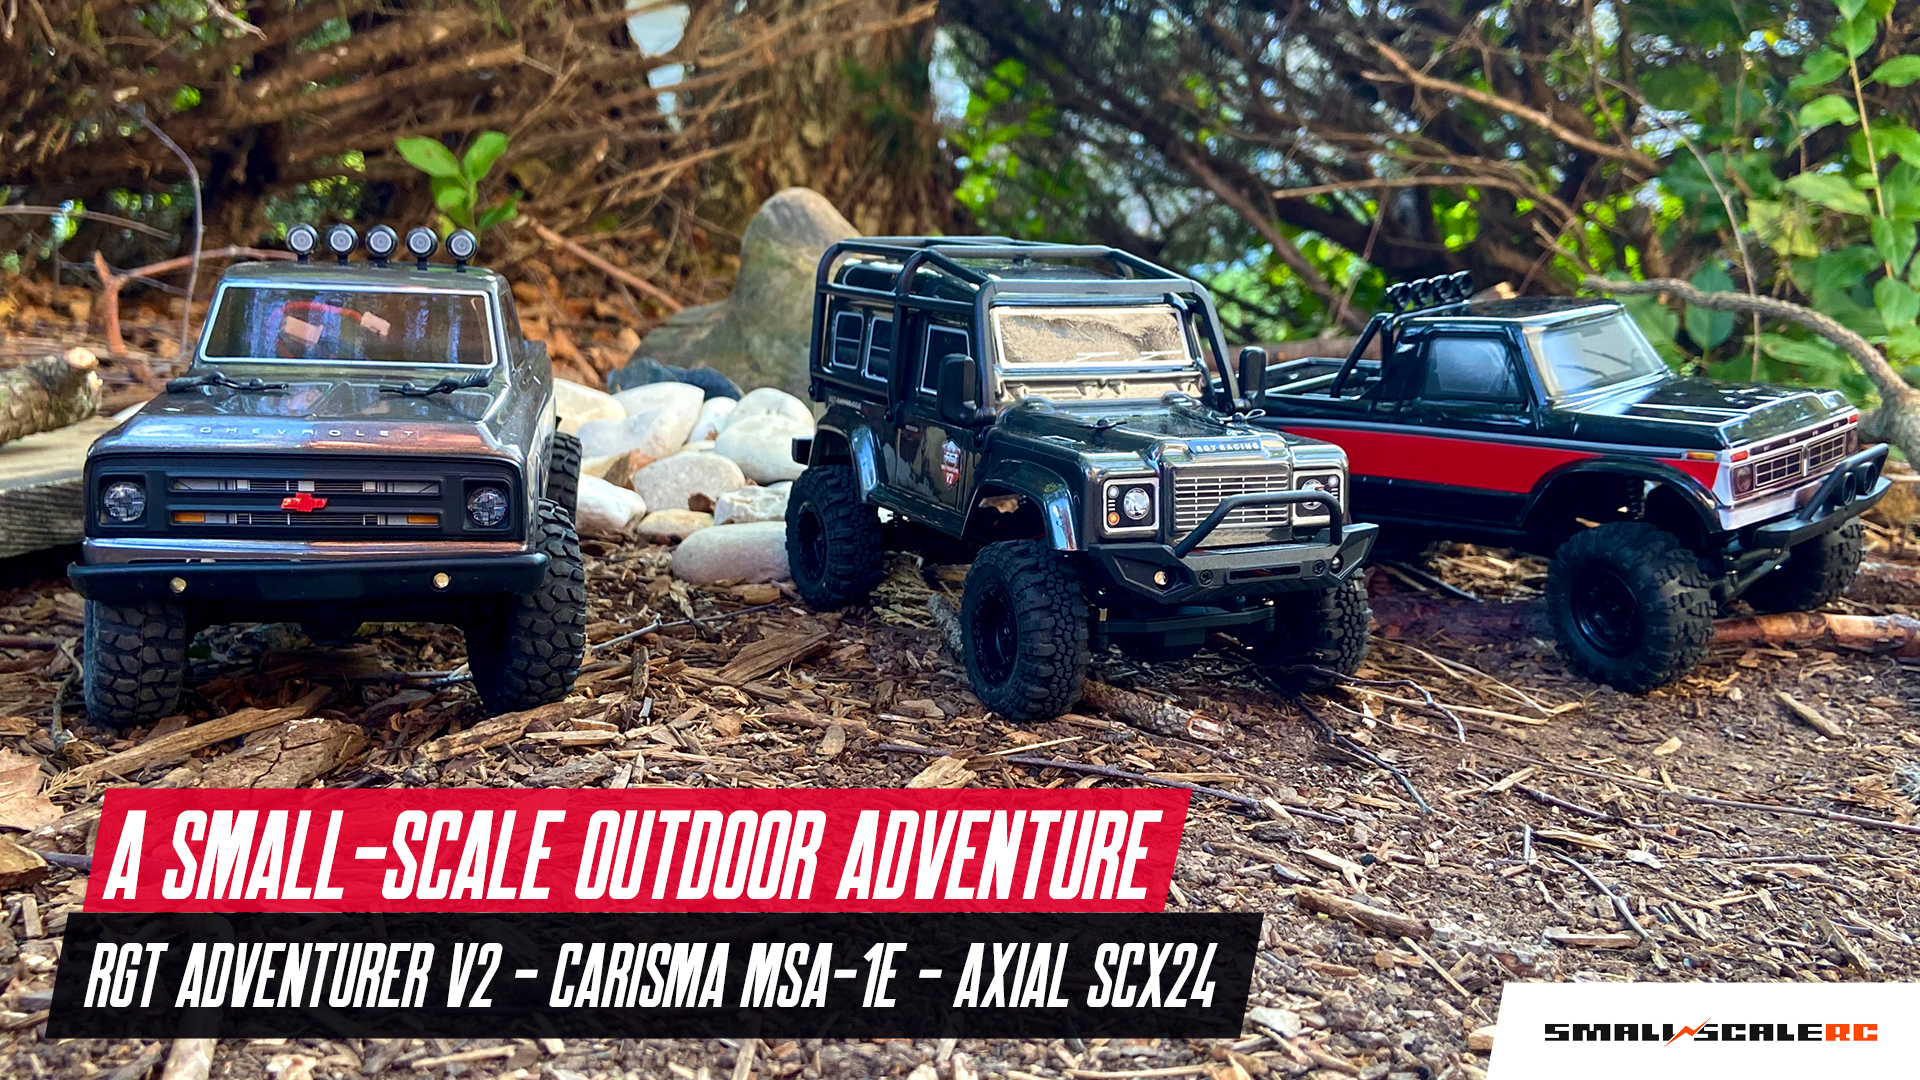 Let's Go Small-scale Crawling with Three 1/24-scale Rigs [Video]